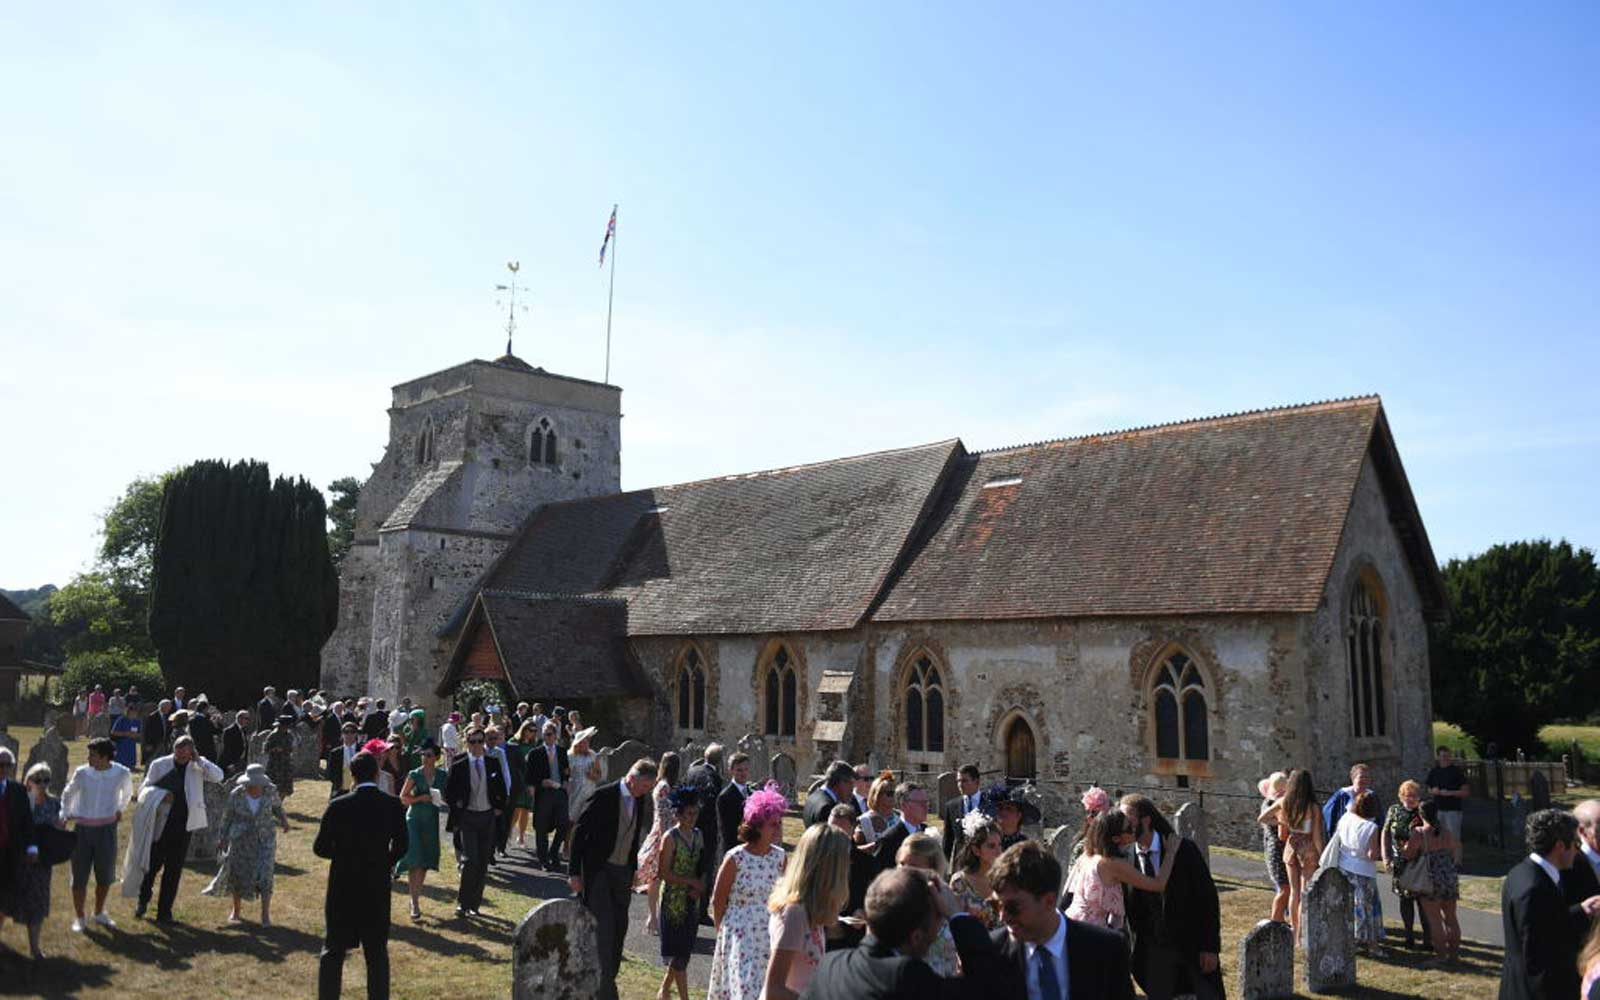 Guests outside St Mary the Virgin Church in Frensham, Surrey, after attending the wedding of Charlie van Straubenzee and Daisy Jenks